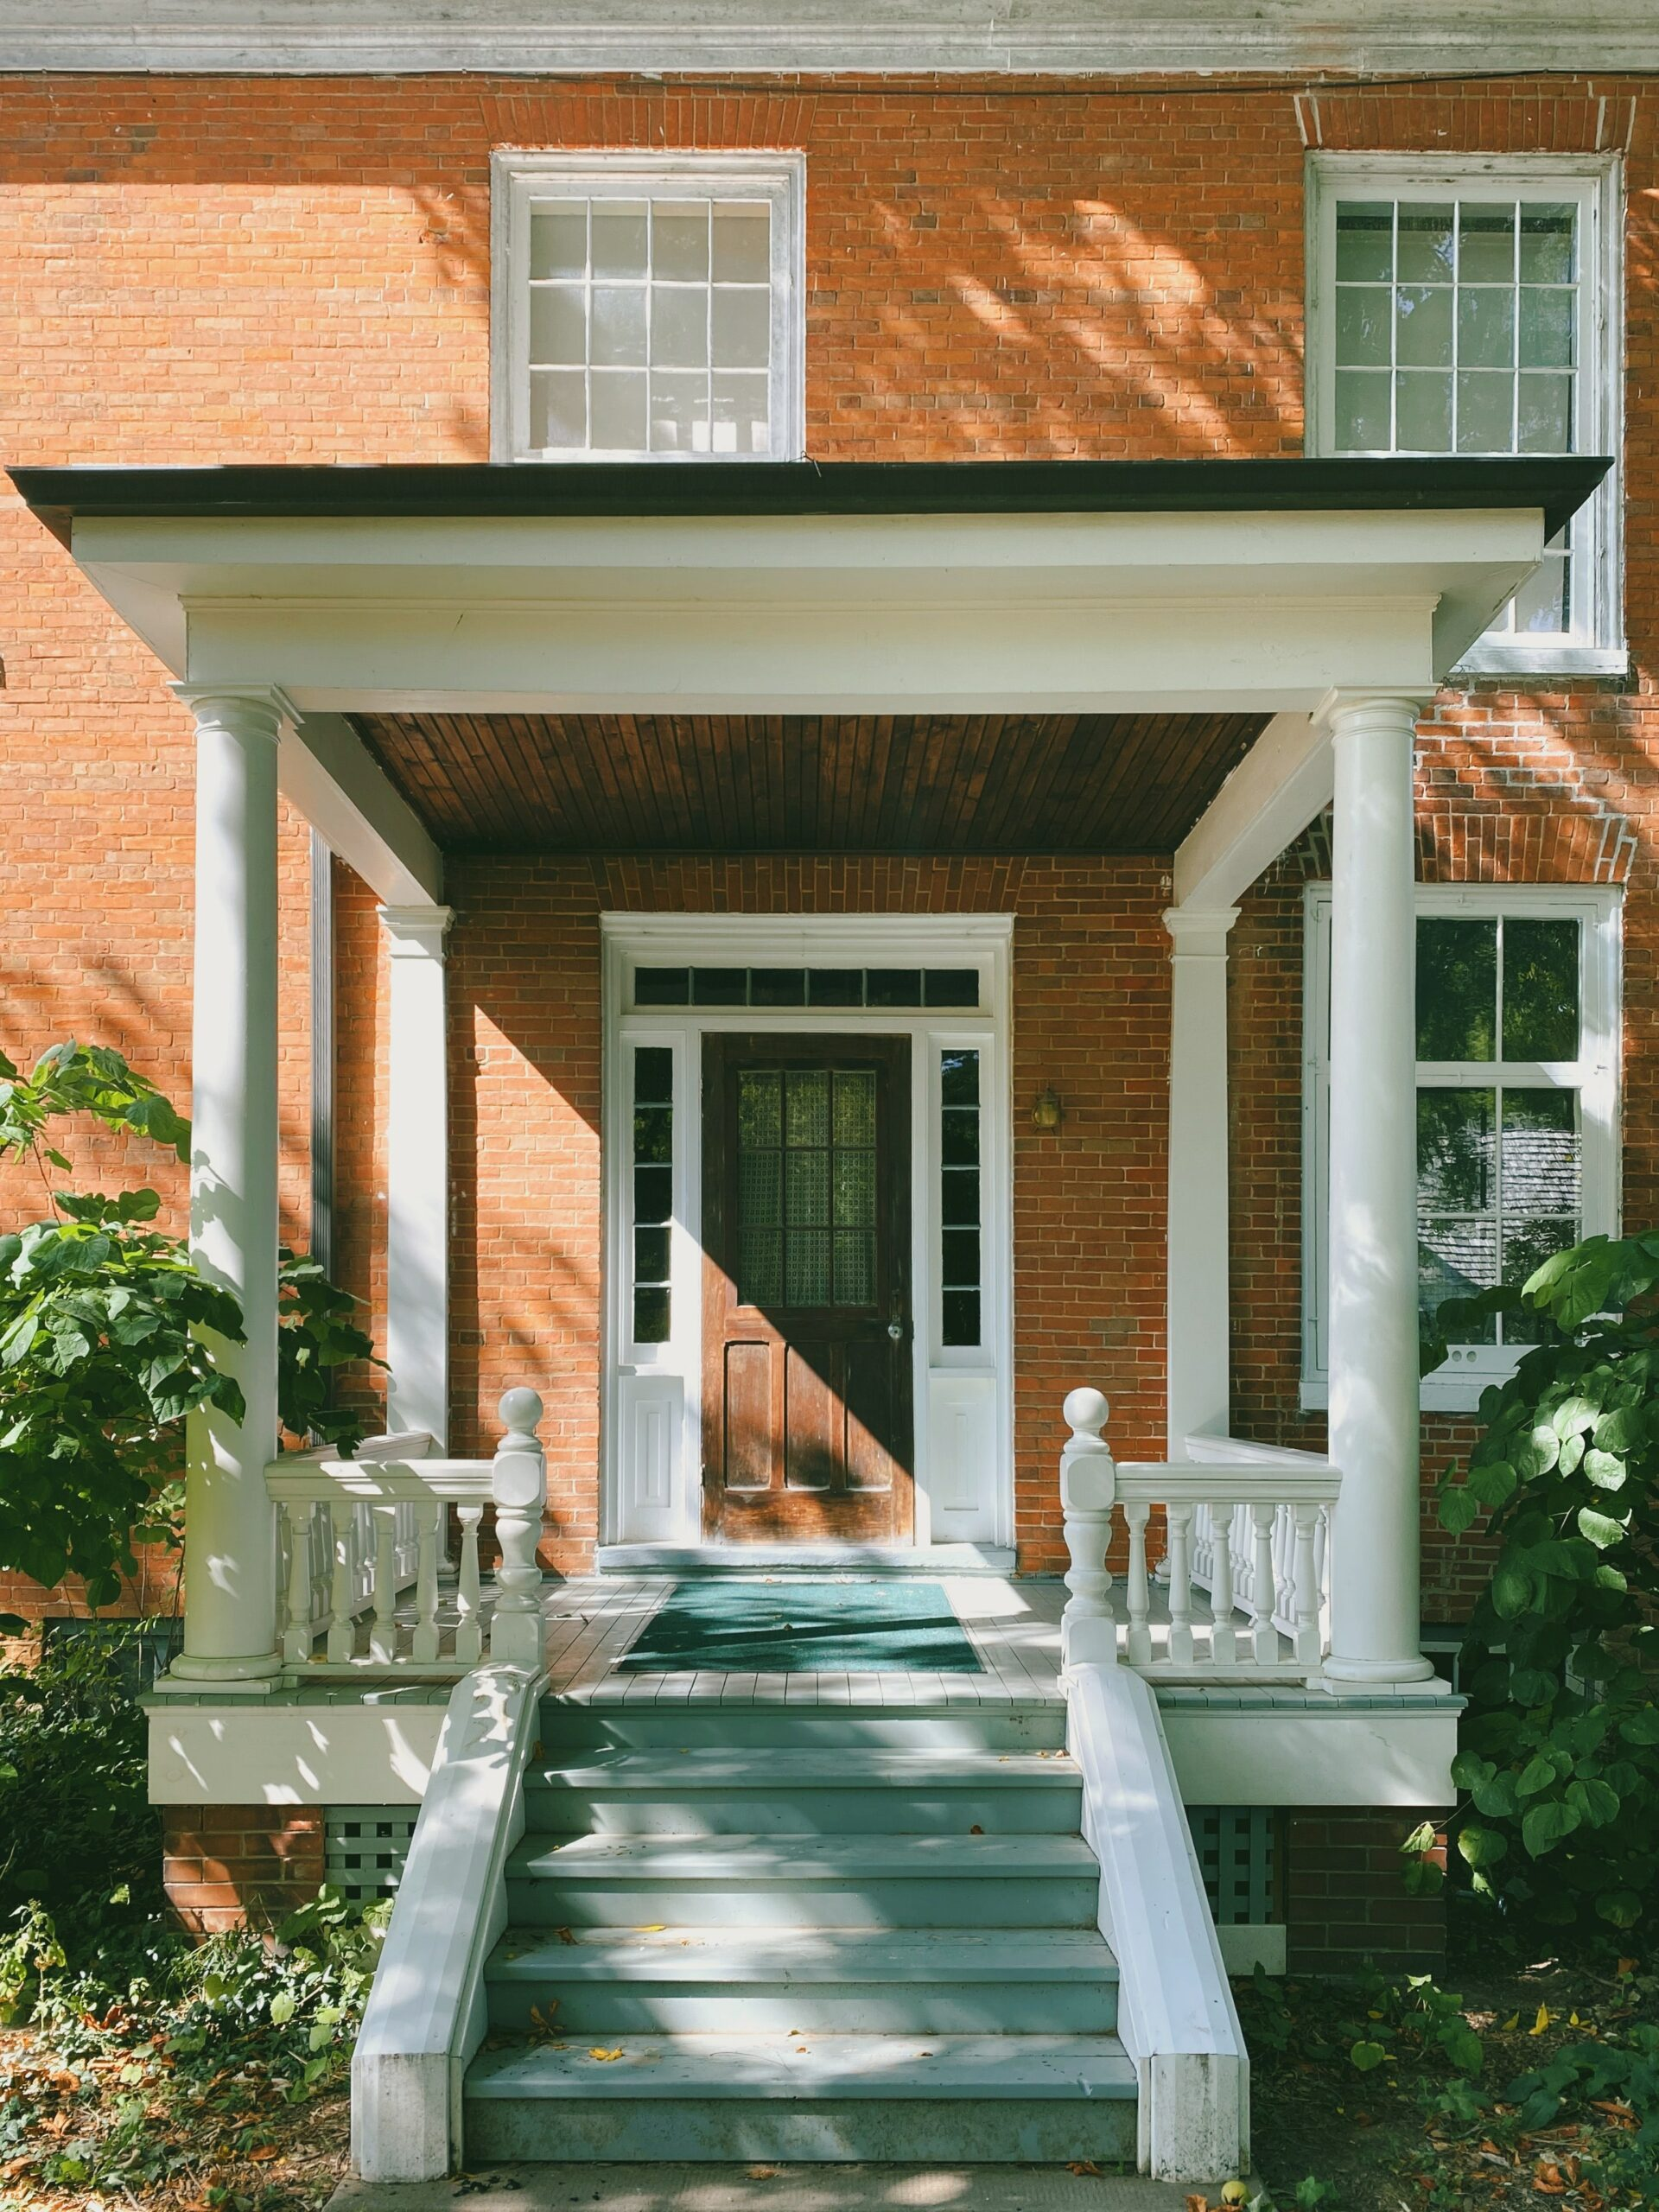 Image of a front door with a large porch